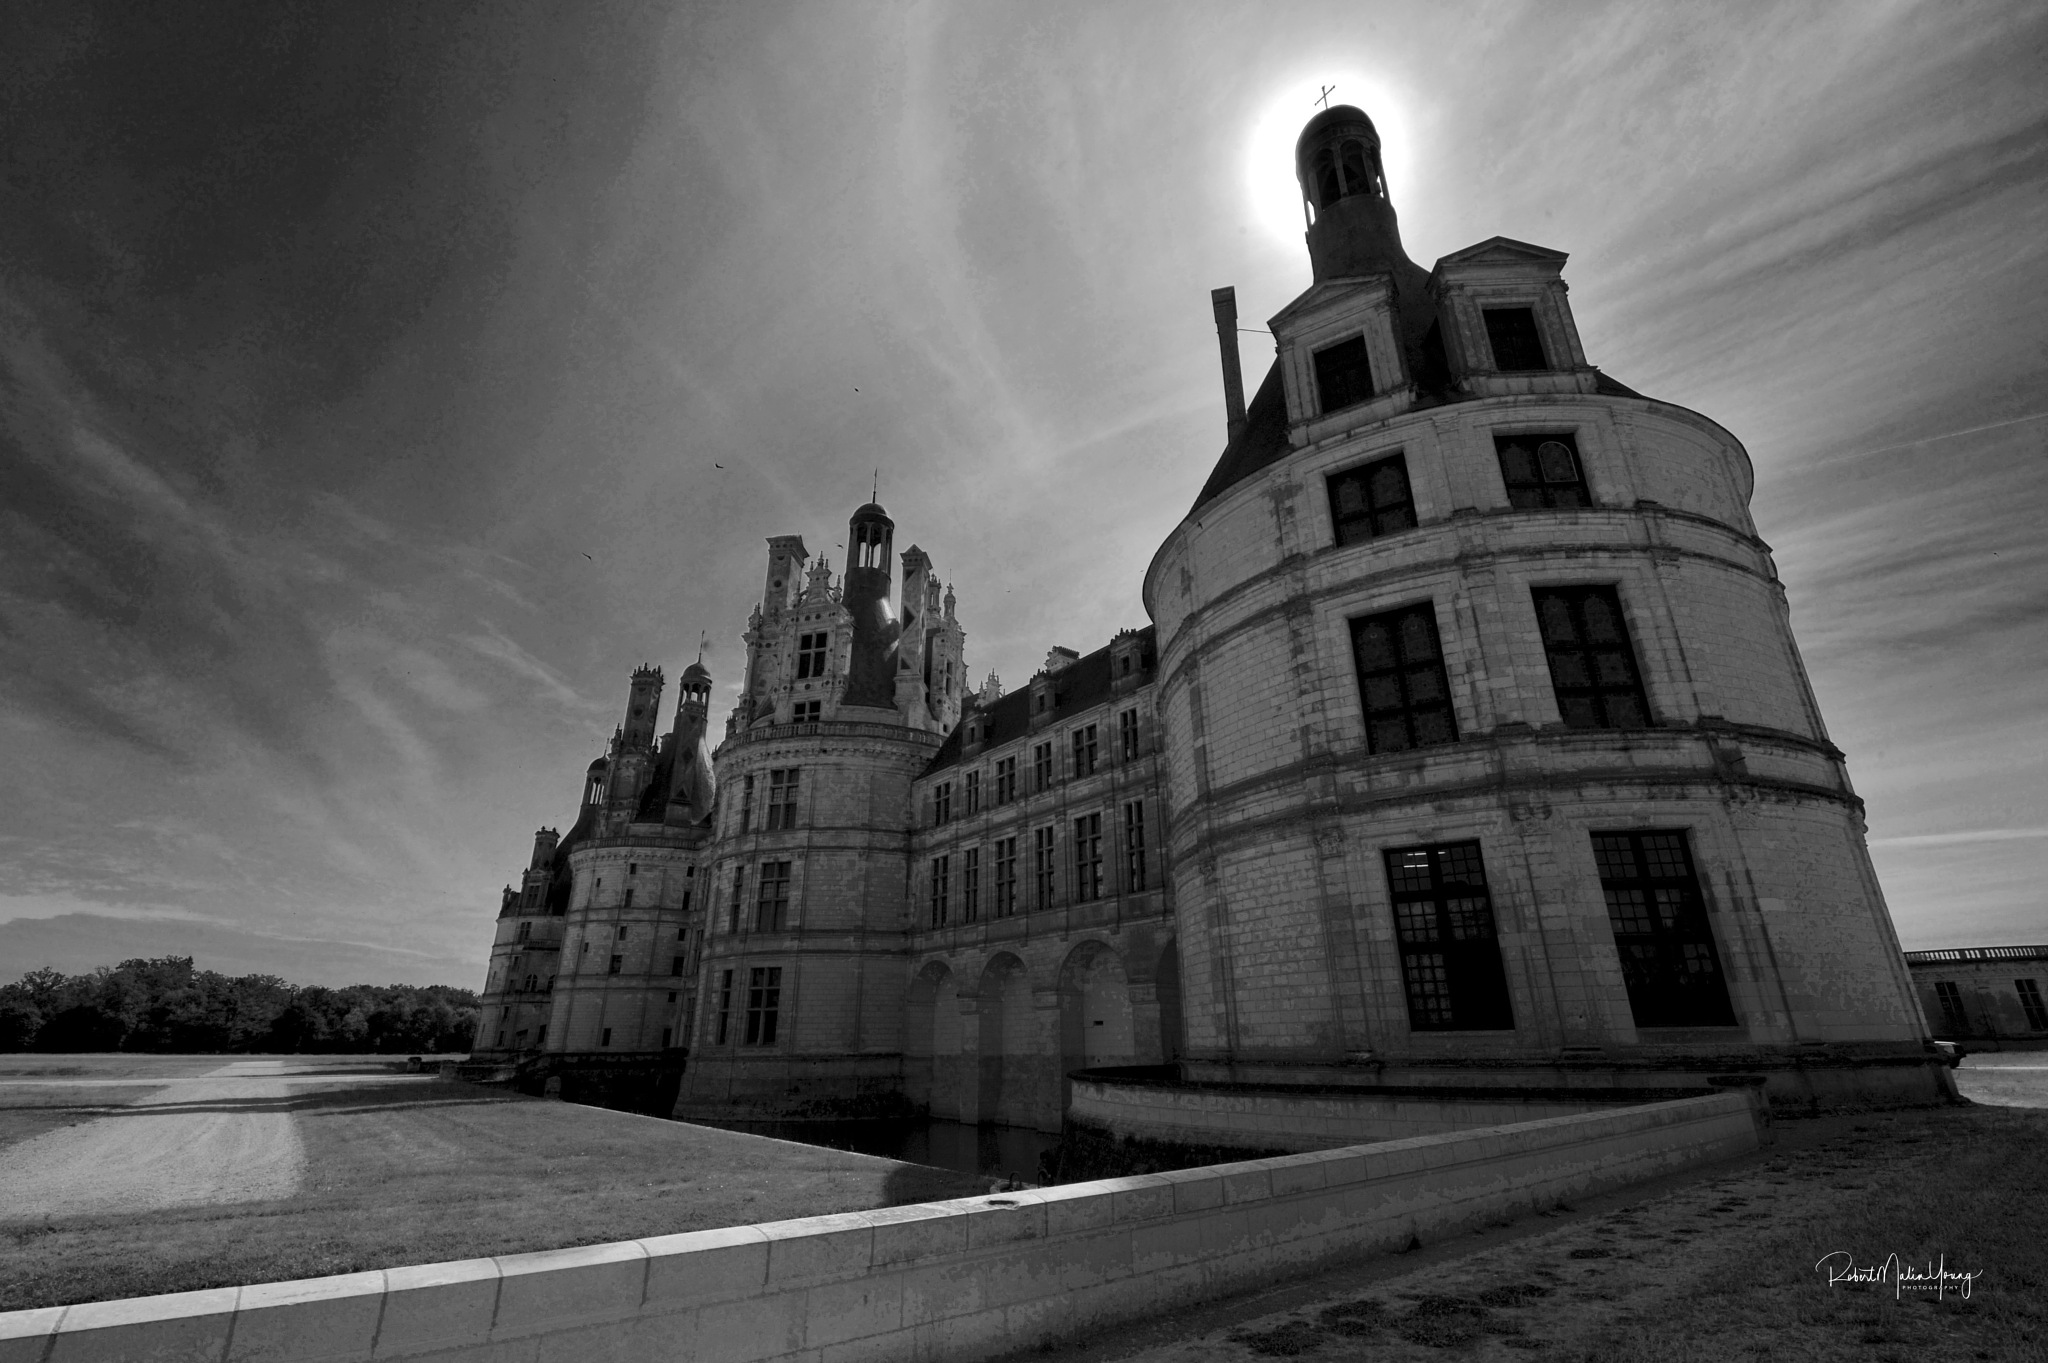 Loire Valley 2018 by Robert Malin Young